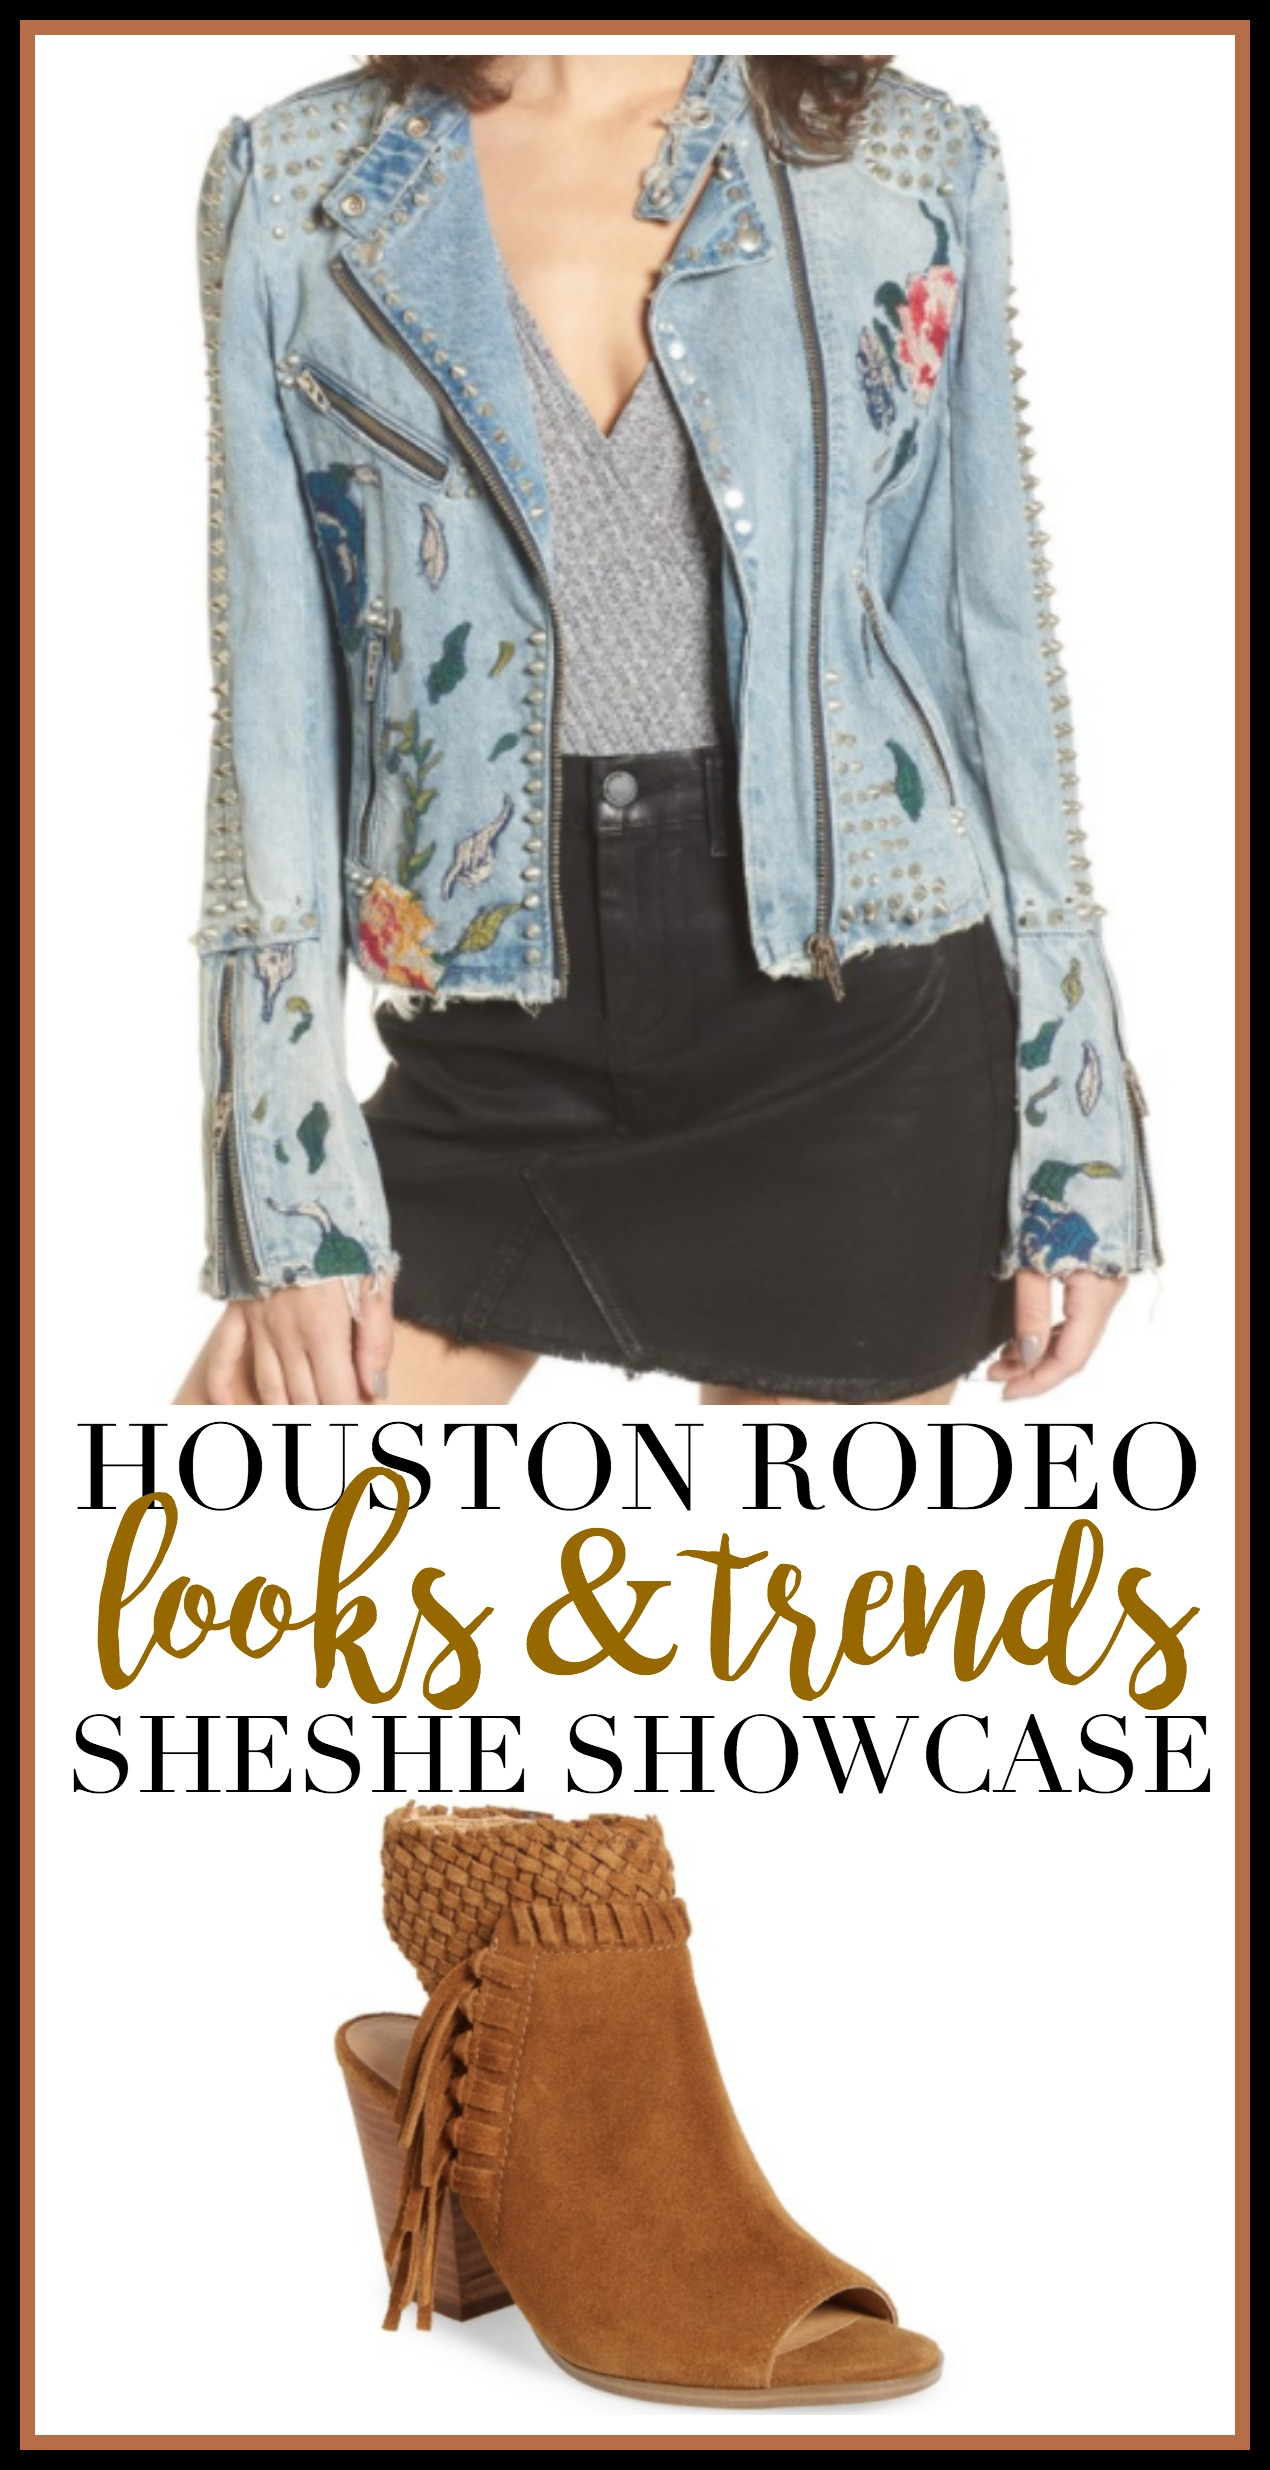 rodeo lineup, houston rodeo, rodeo looks, rodeo wear